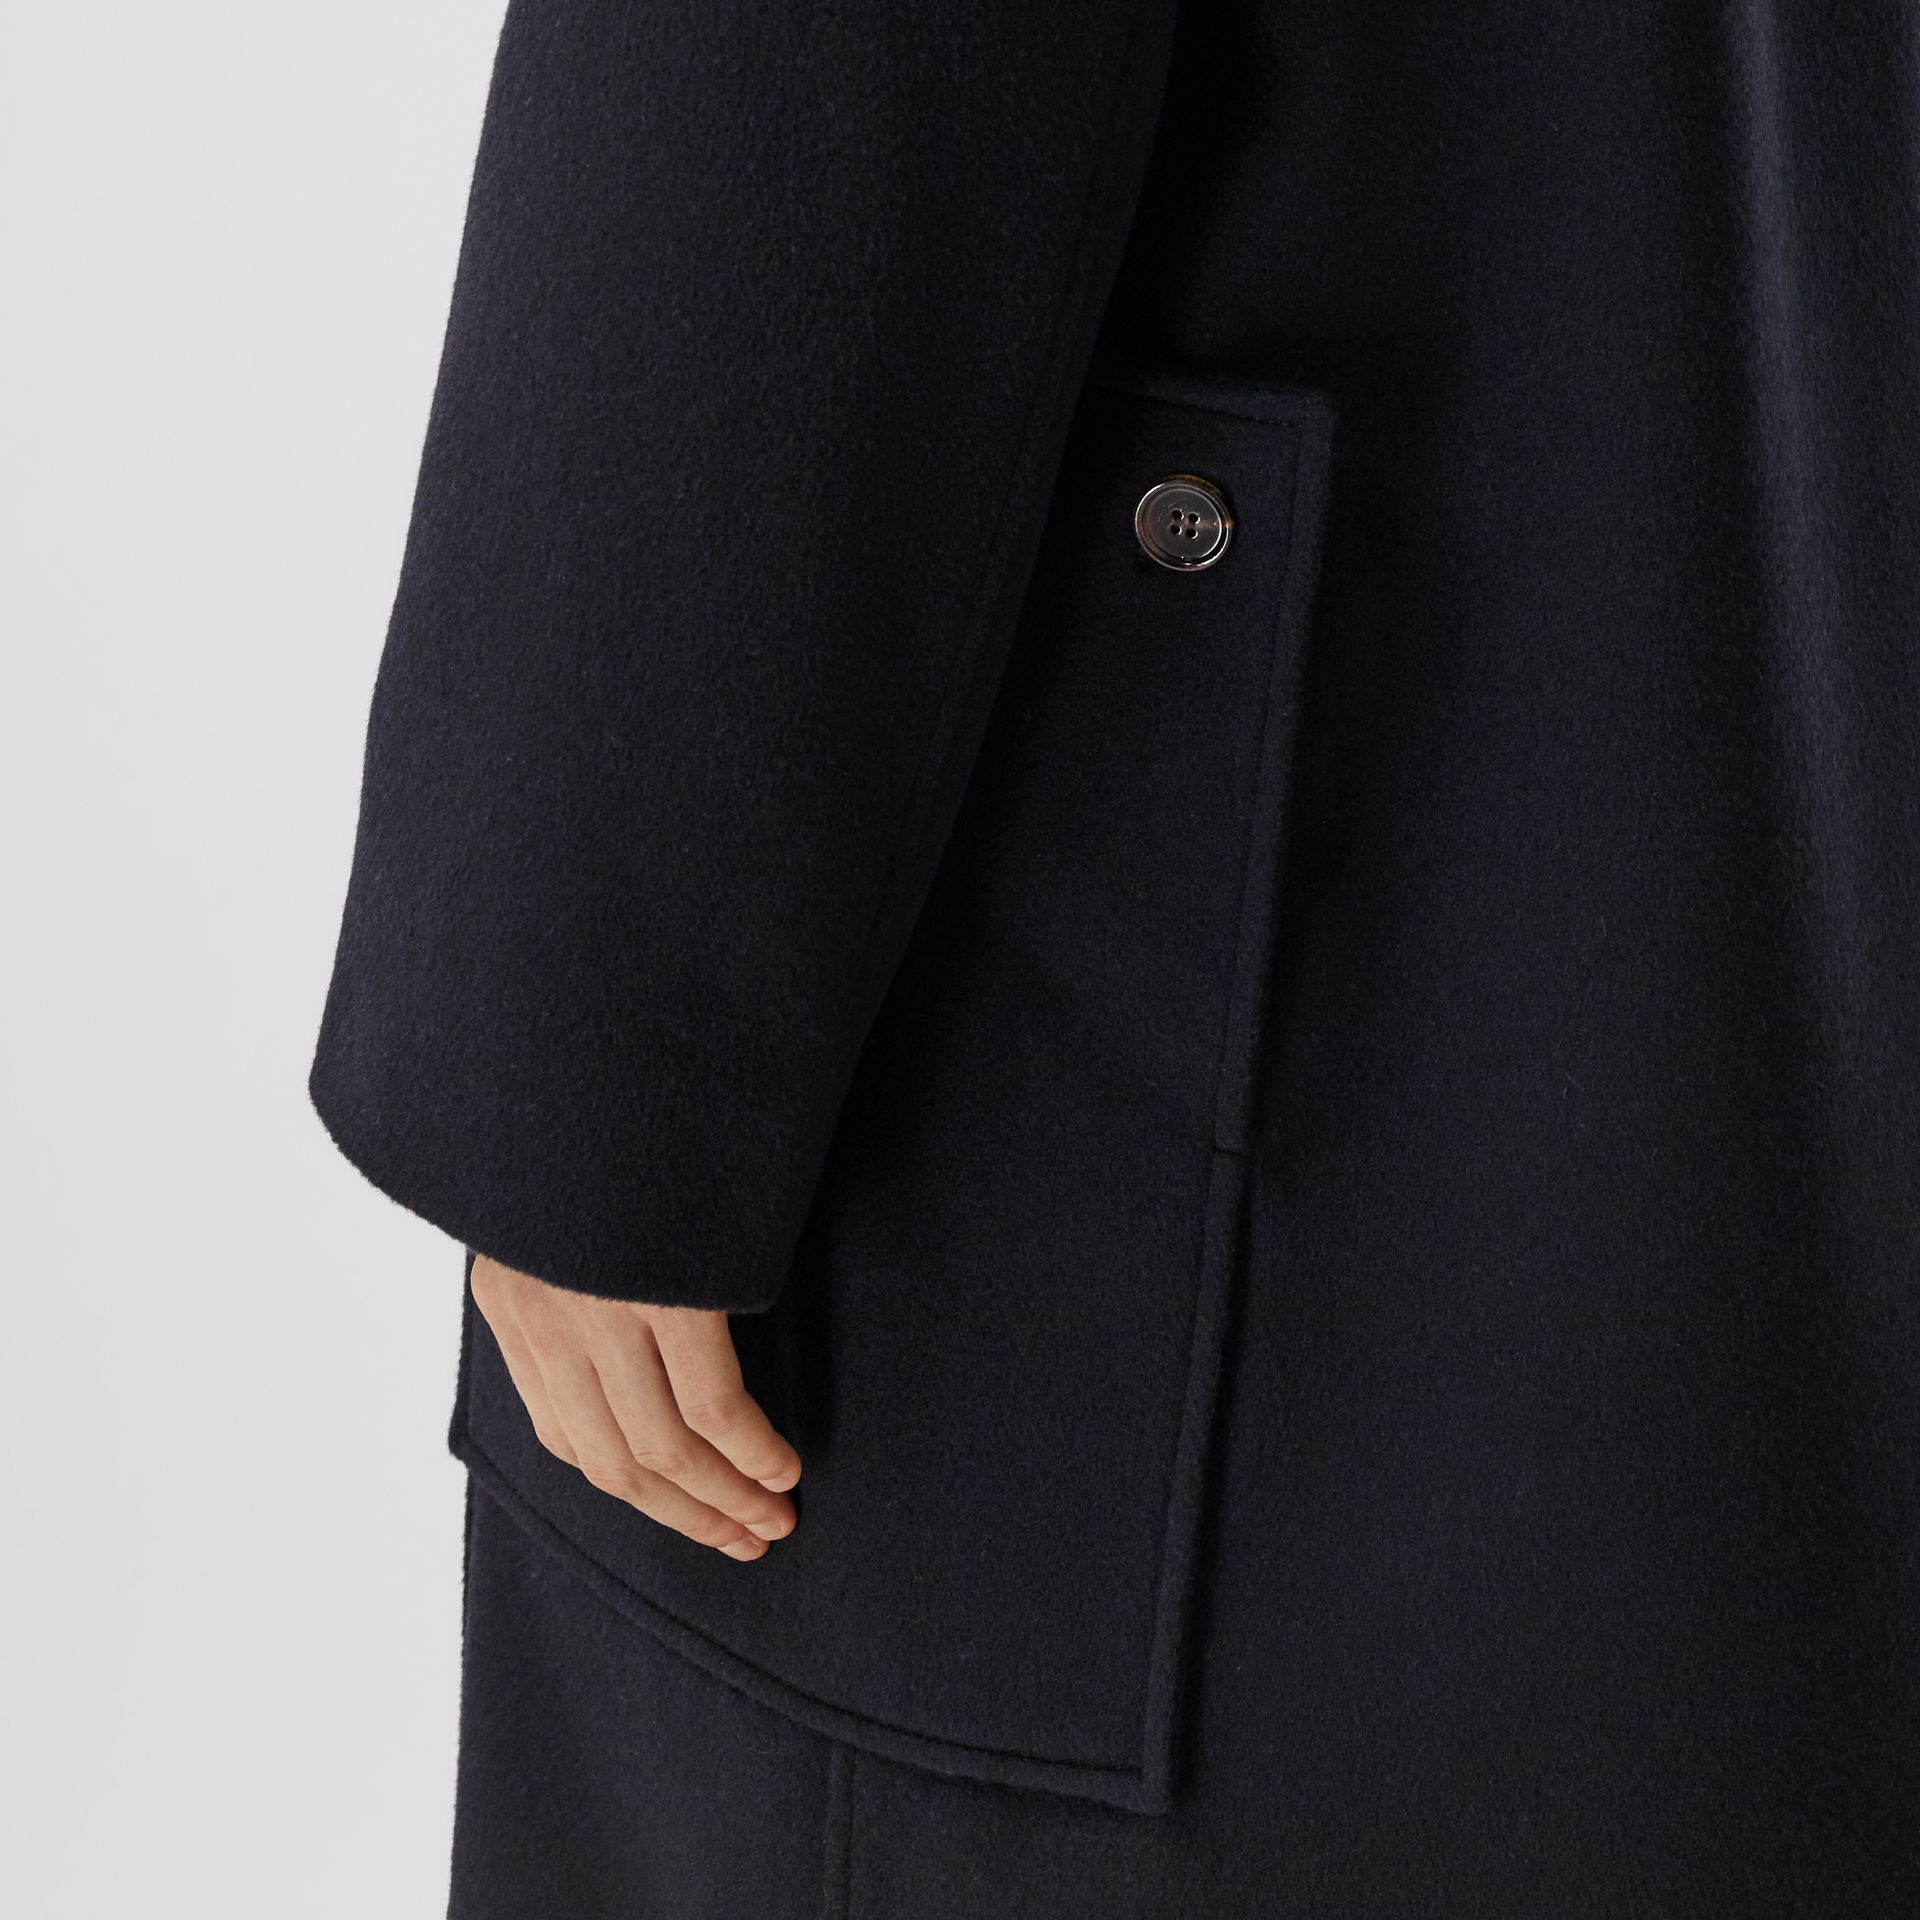 Pocket Detail Cashmere Pea Coat in Navy - Women | Burberry - gallery image 5